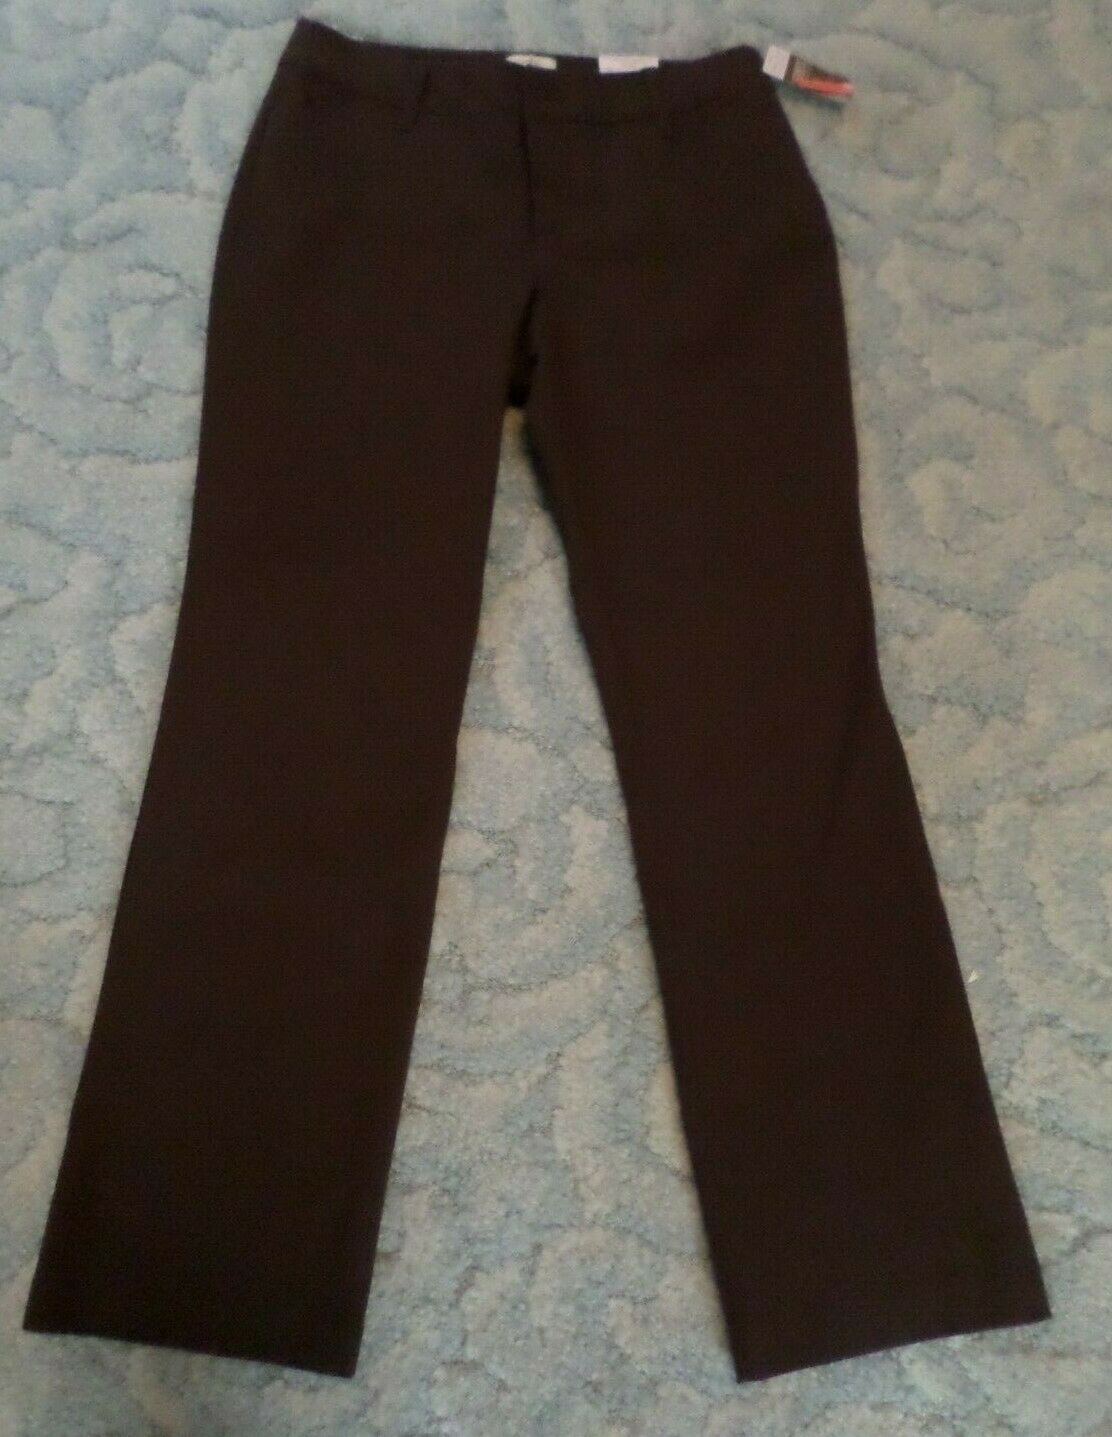 NEW WITH TAGS WOMENS SIZE 10P BROWN ST. JOHN'S BAY PANTS